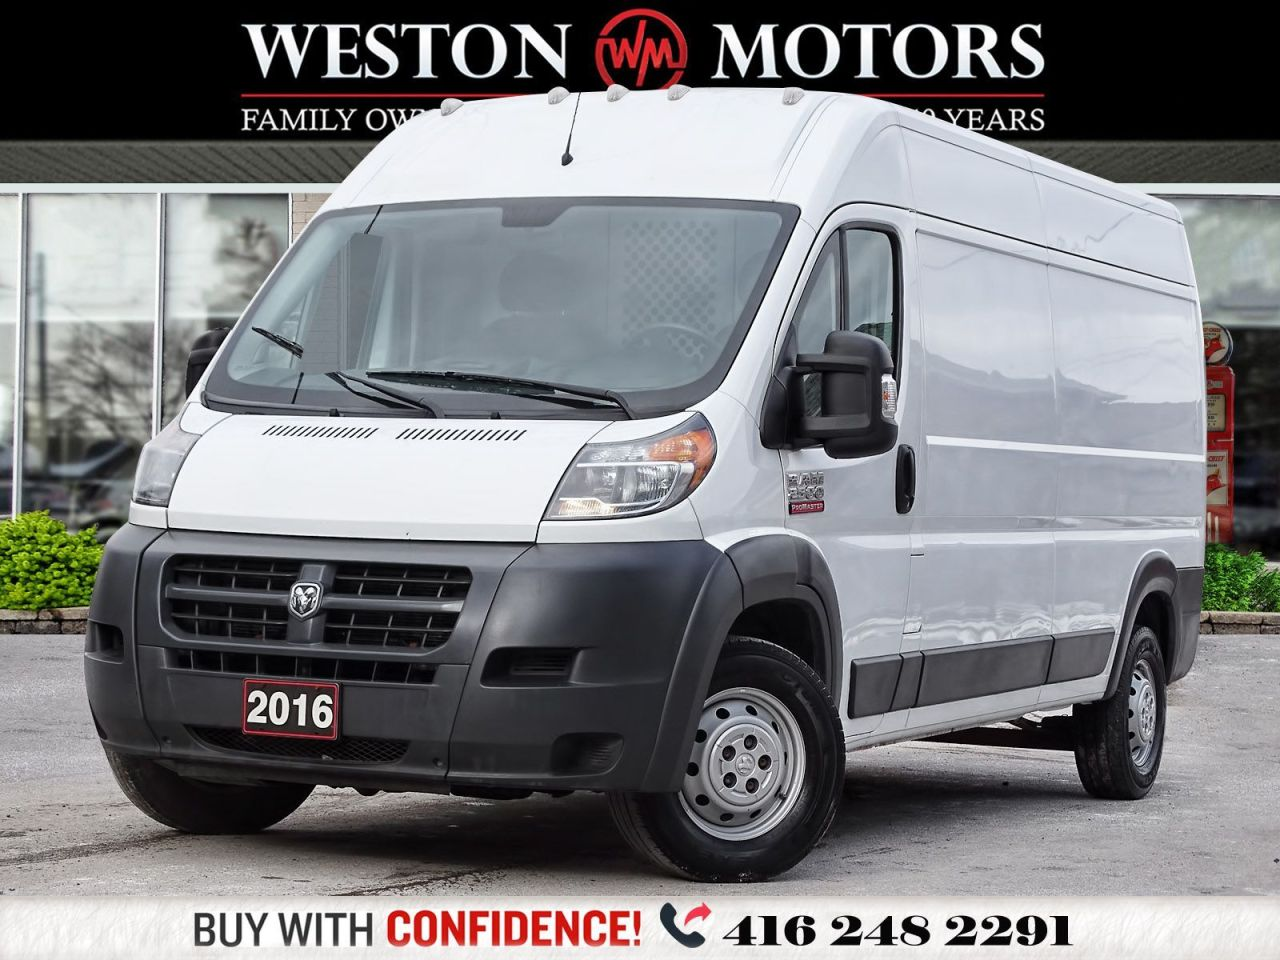 2016 Dodge ProMaster 2500 2500*HIGHROOF*CAPTAIN CHAIRS*PICTURES COMING!!*